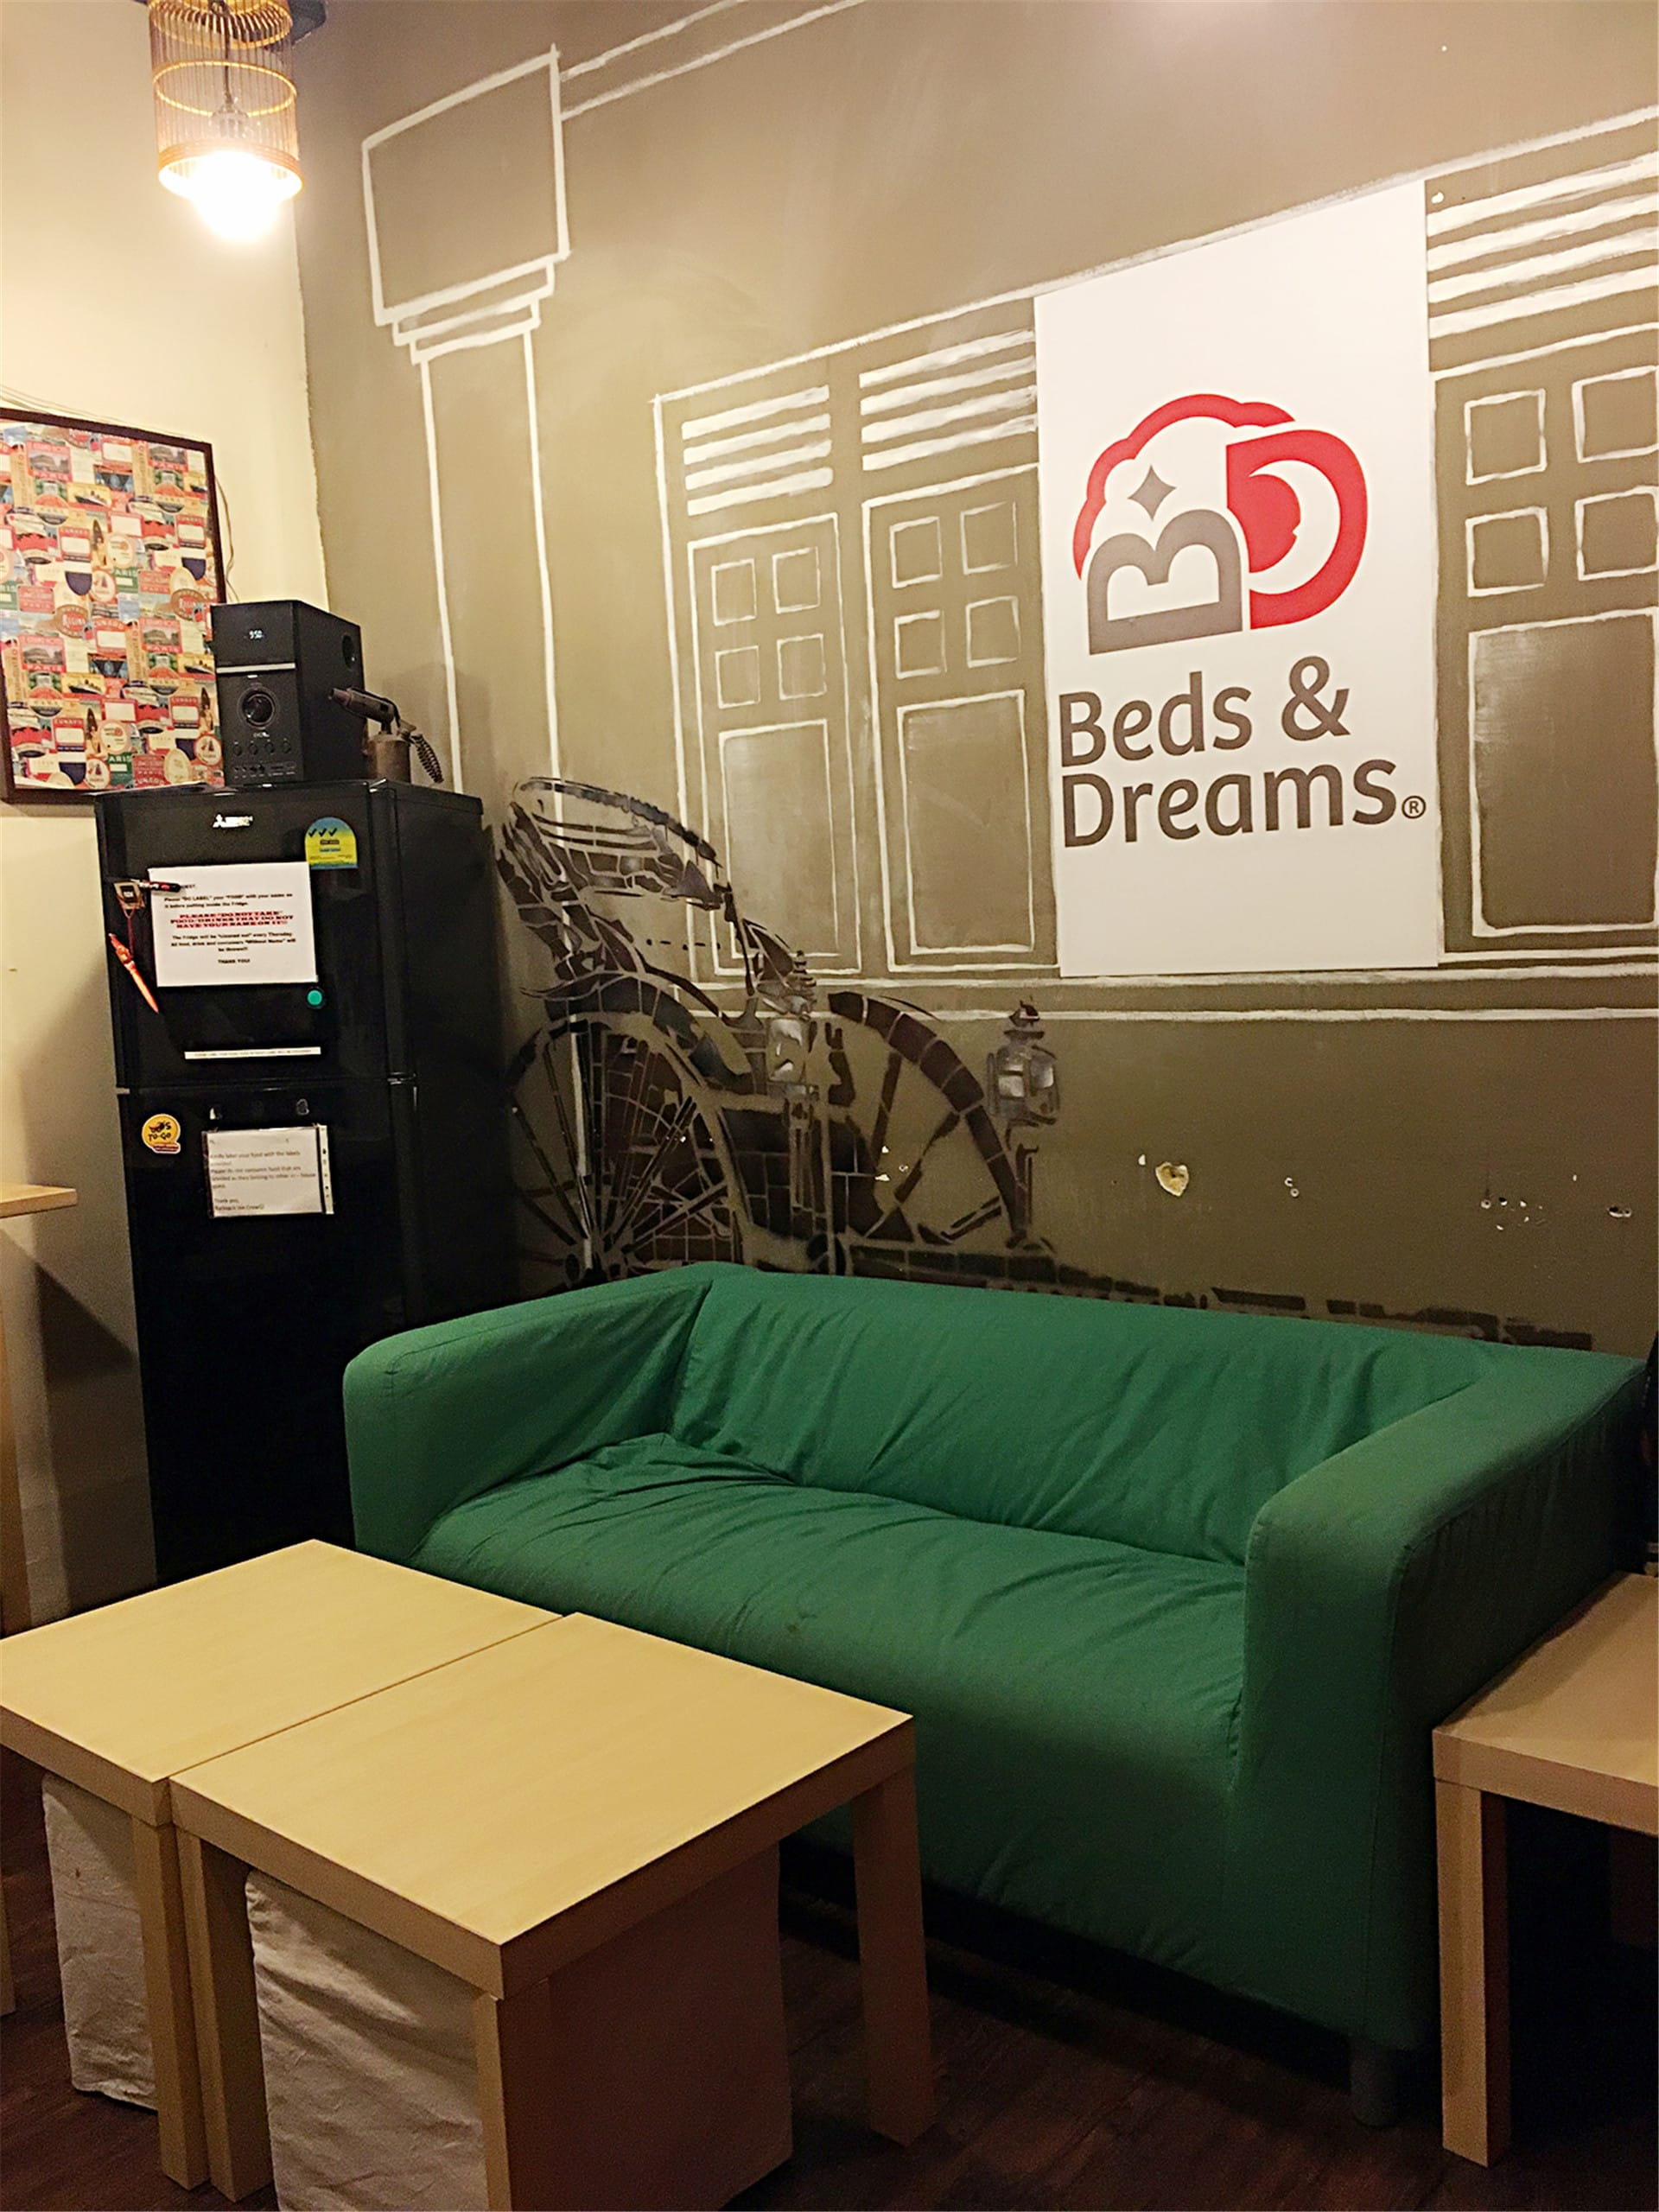 HOSTEL - Beds and Dreams Inn @ Chinatown 1